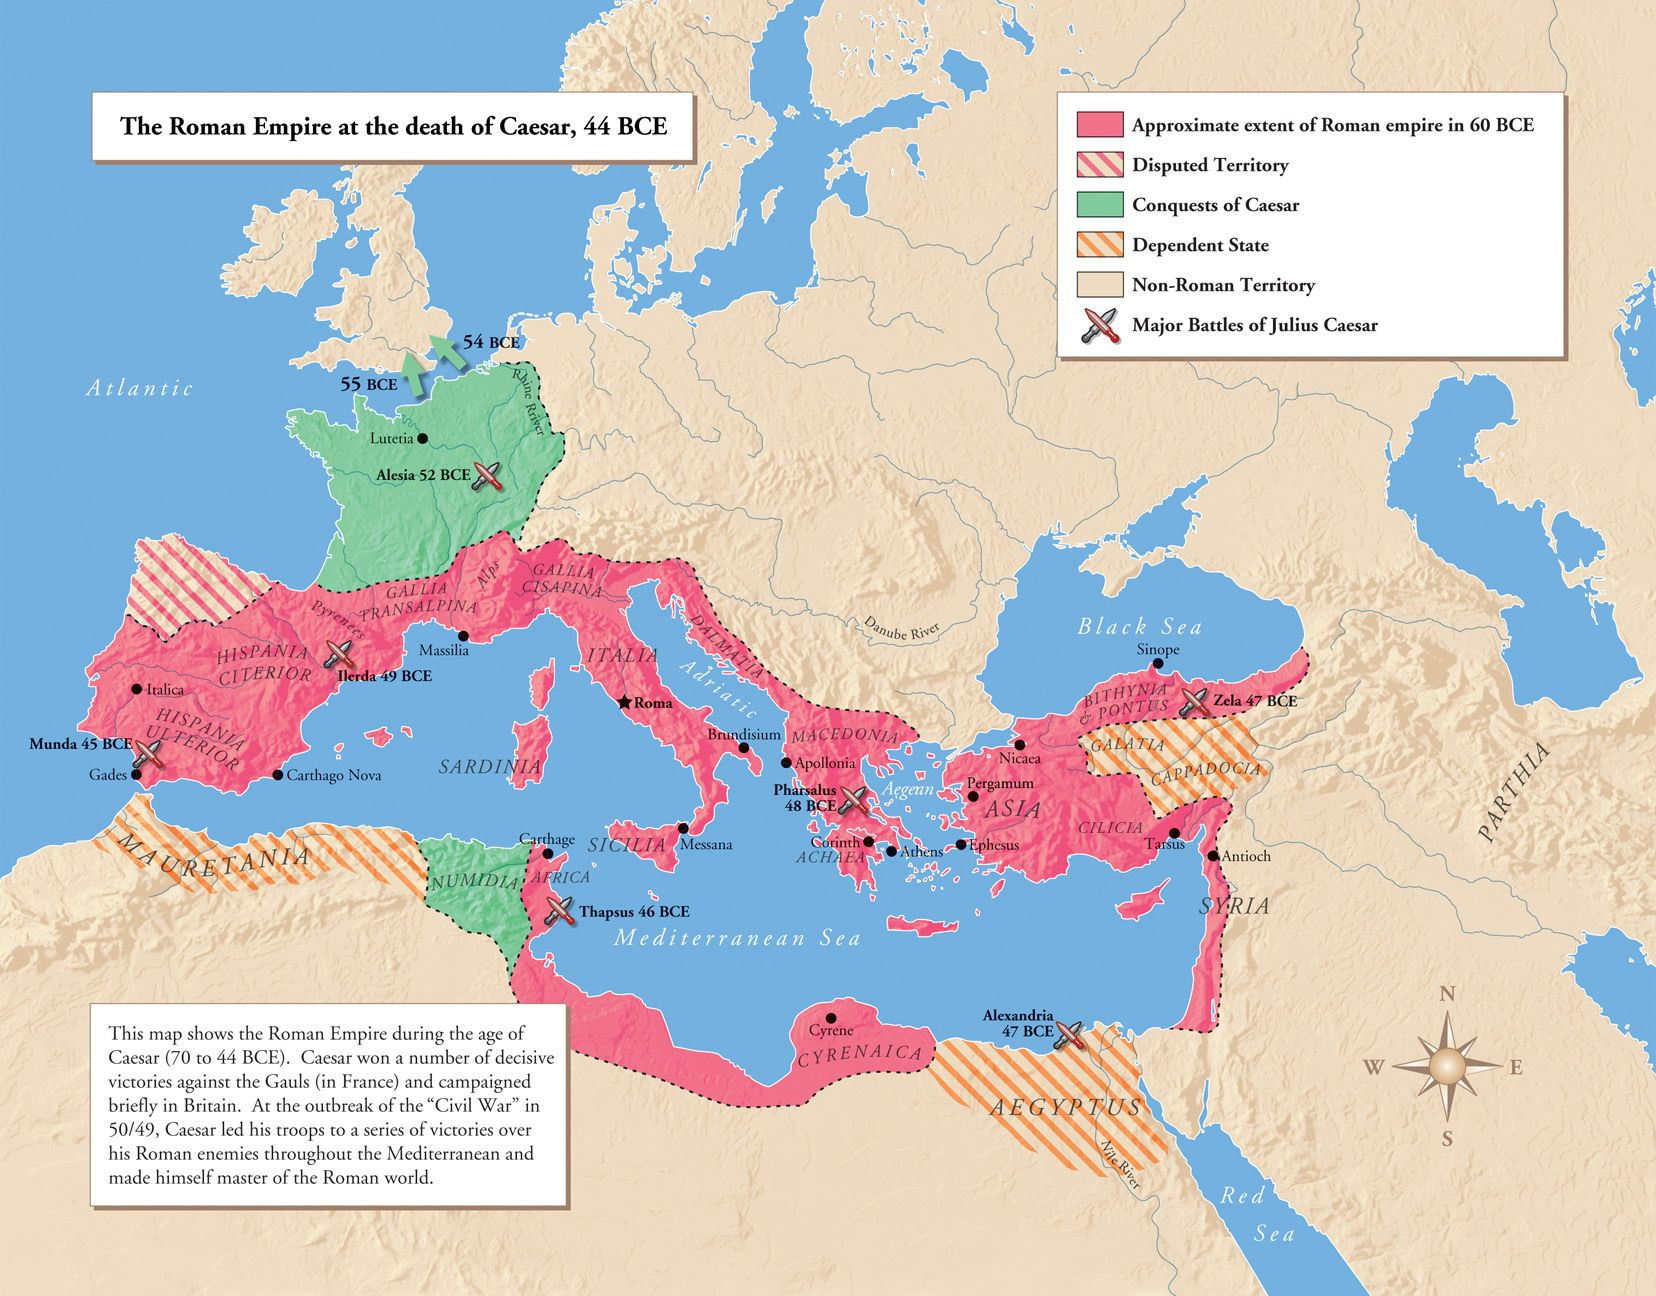 ancient rome a thriving civilization The influence of the roman empire on western civilization was profound in its   as one of the greatest, if not the greatest, political and cultural powers in history.